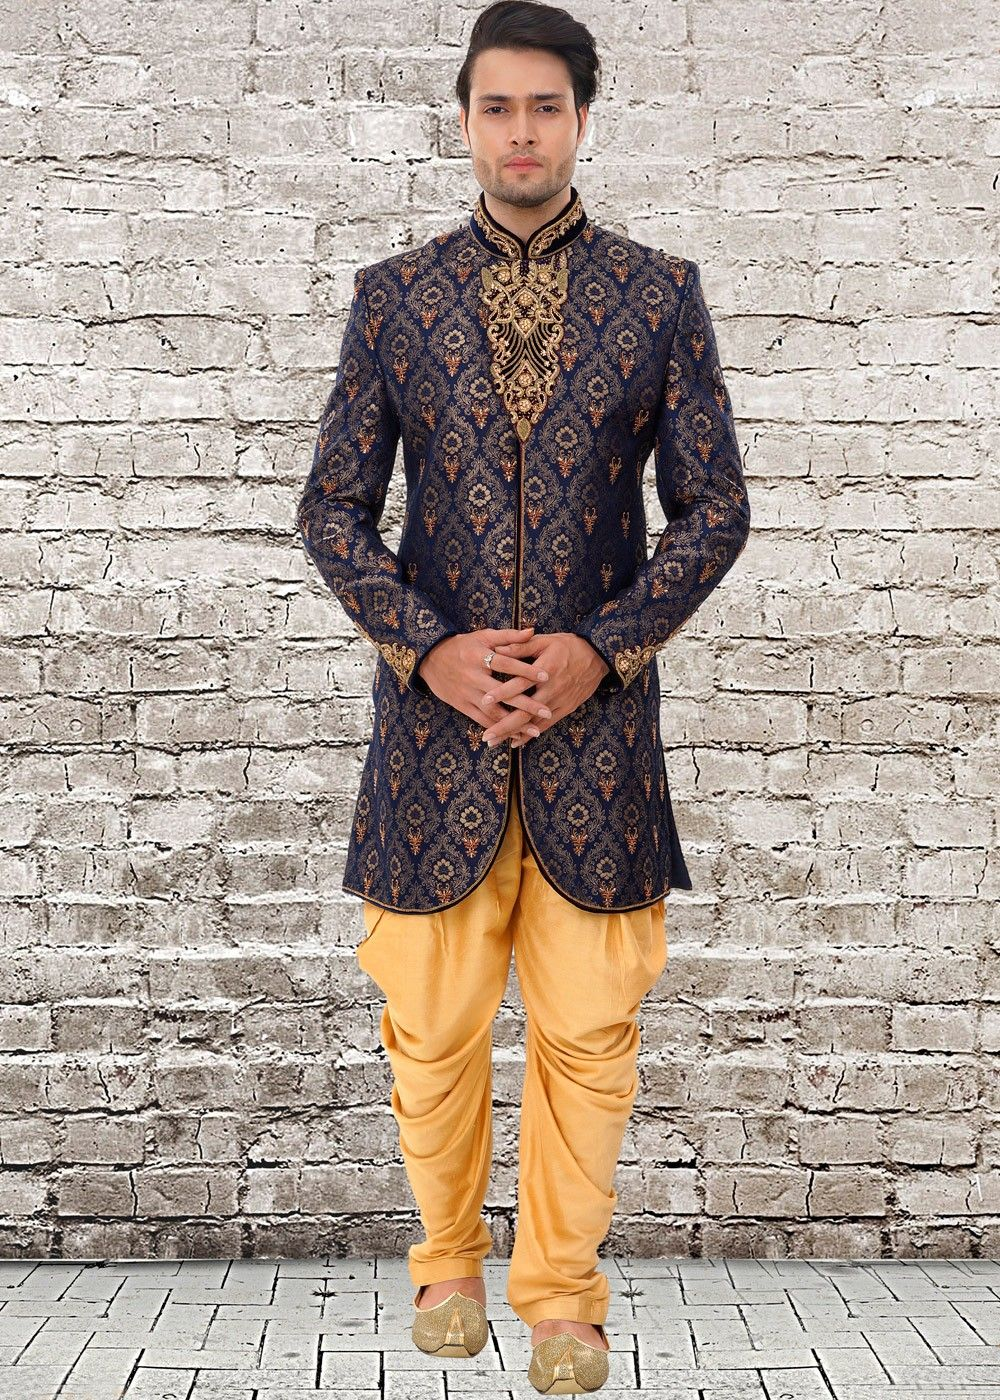 6d1605cf6ca2 ... Sherwani Online for Mens. Readymade dark #blue art #silk brocade #sherwani  with full length sleeves and #zari embroidered details.